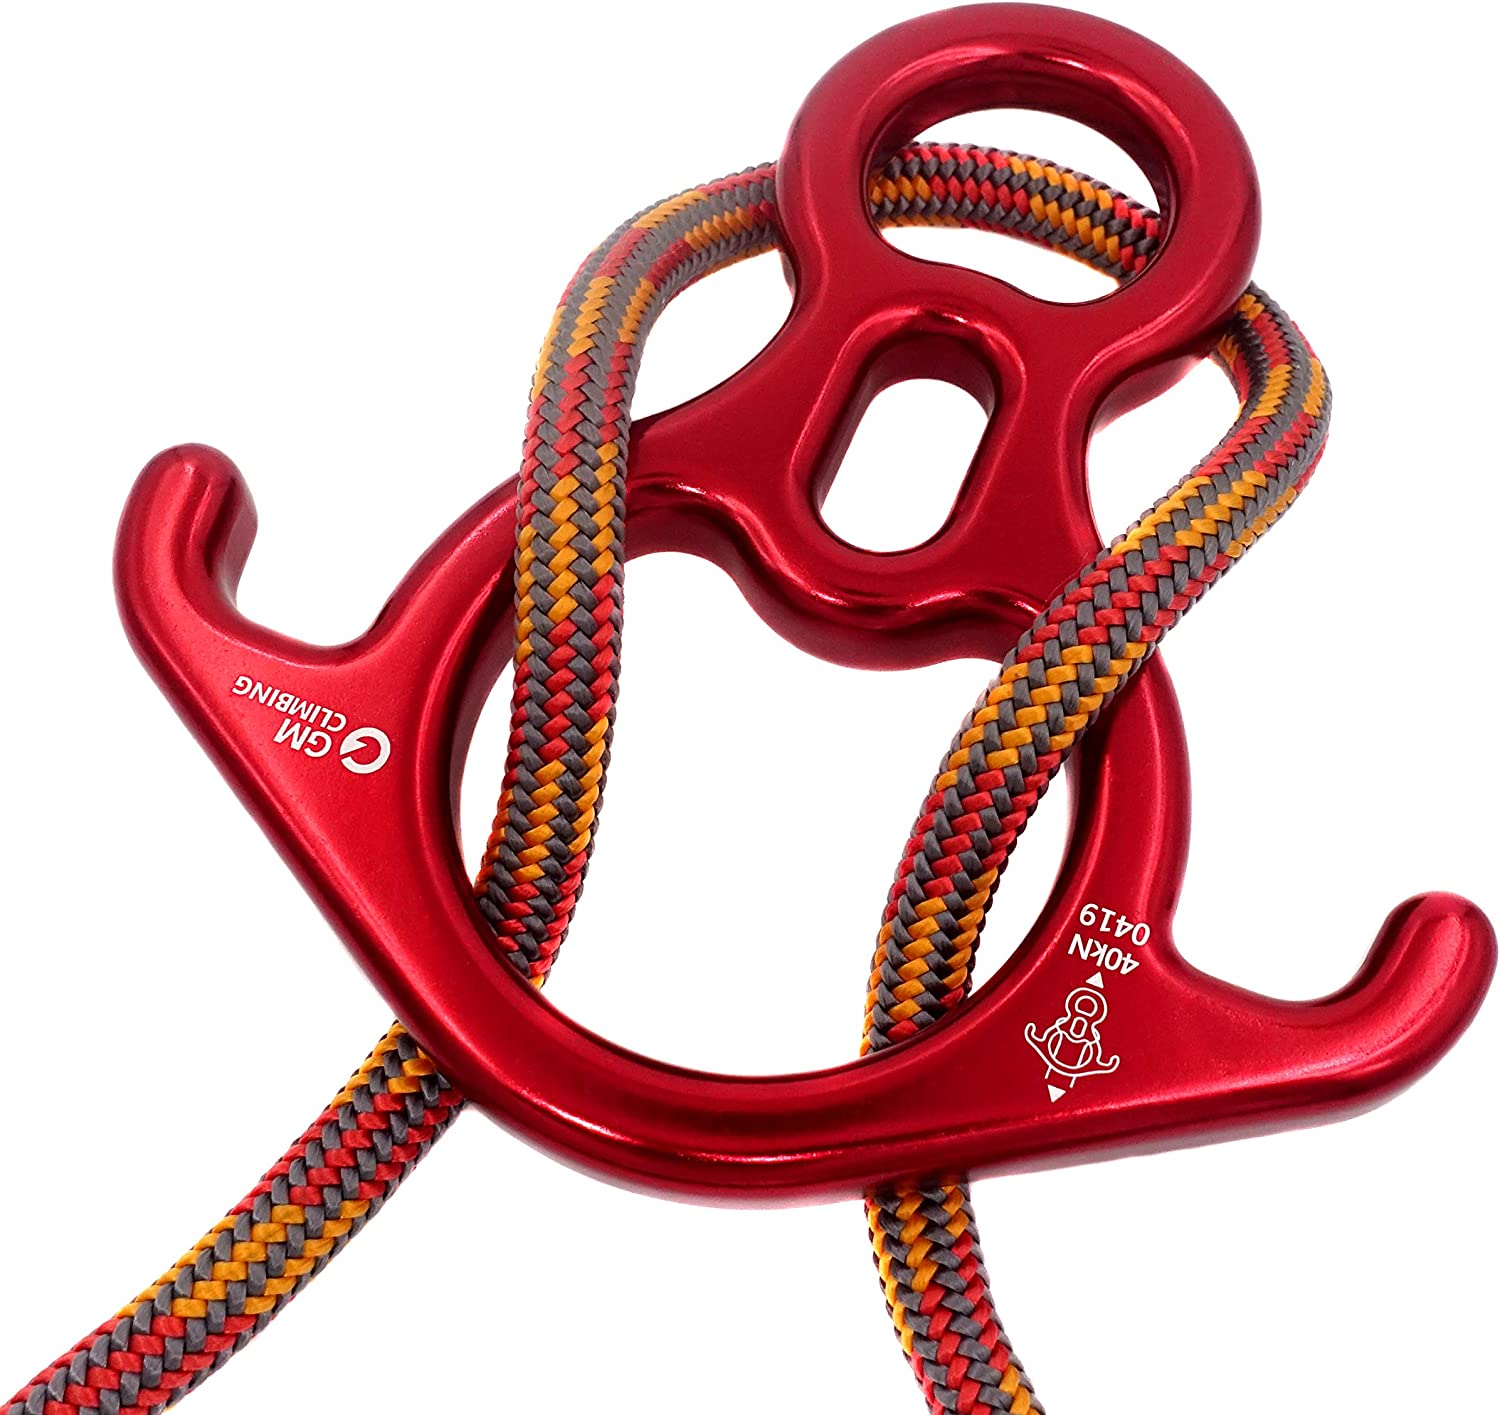 GM CLIMBING 40kN Rescue Figure 8 Descender with Bent-Ear Rappelling Gear Belay Device : Sports & Outdoors